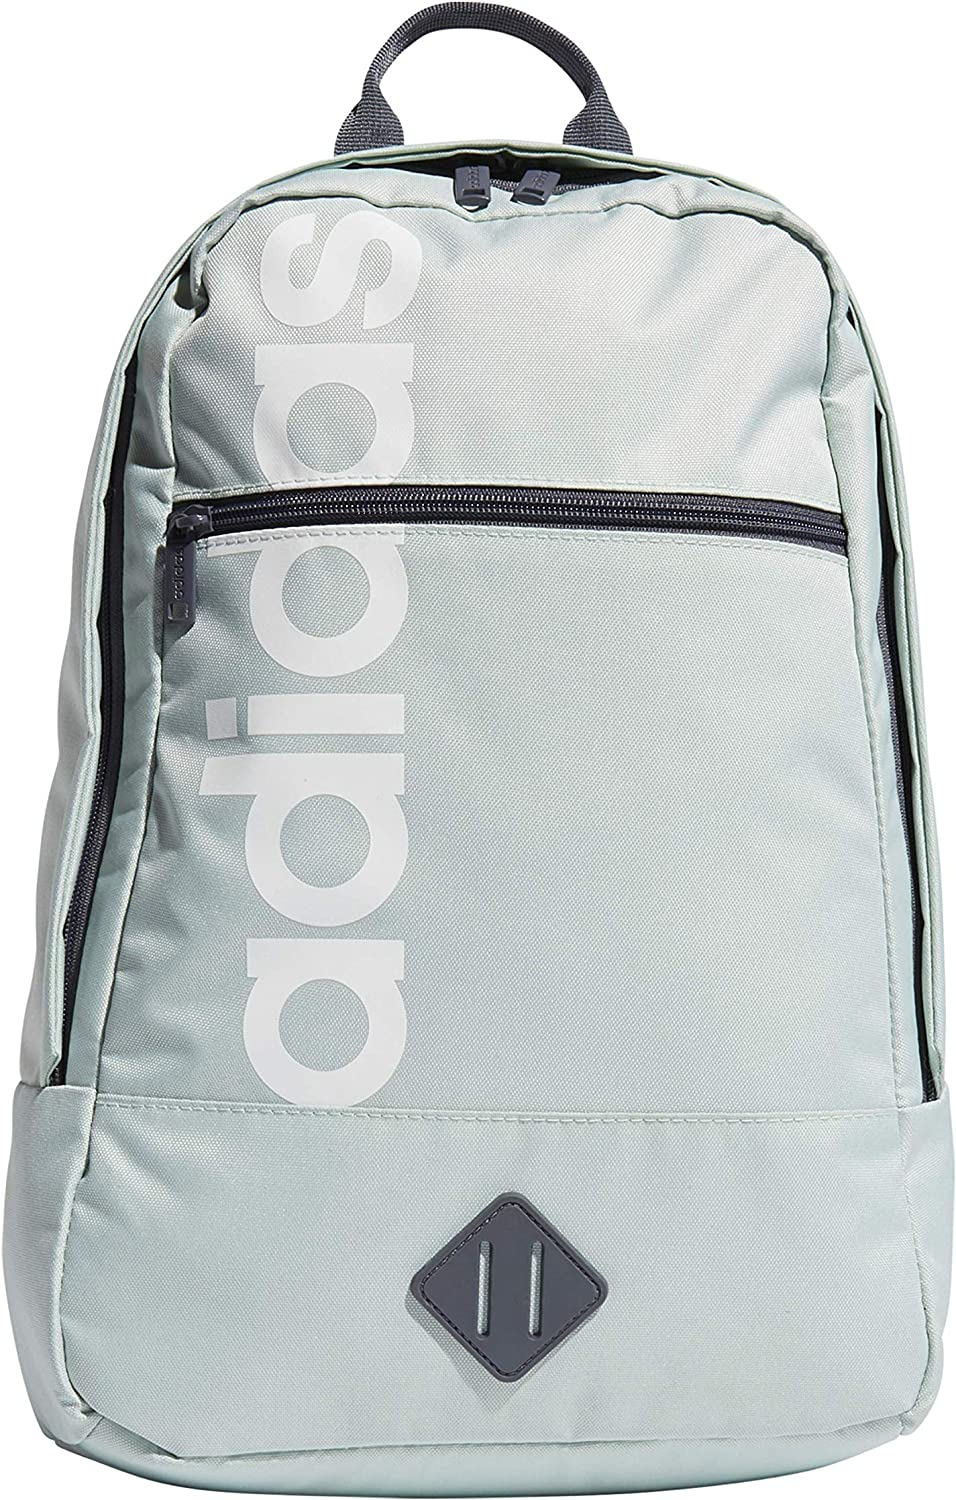 adidas unisex-adult Court Lite Backpack